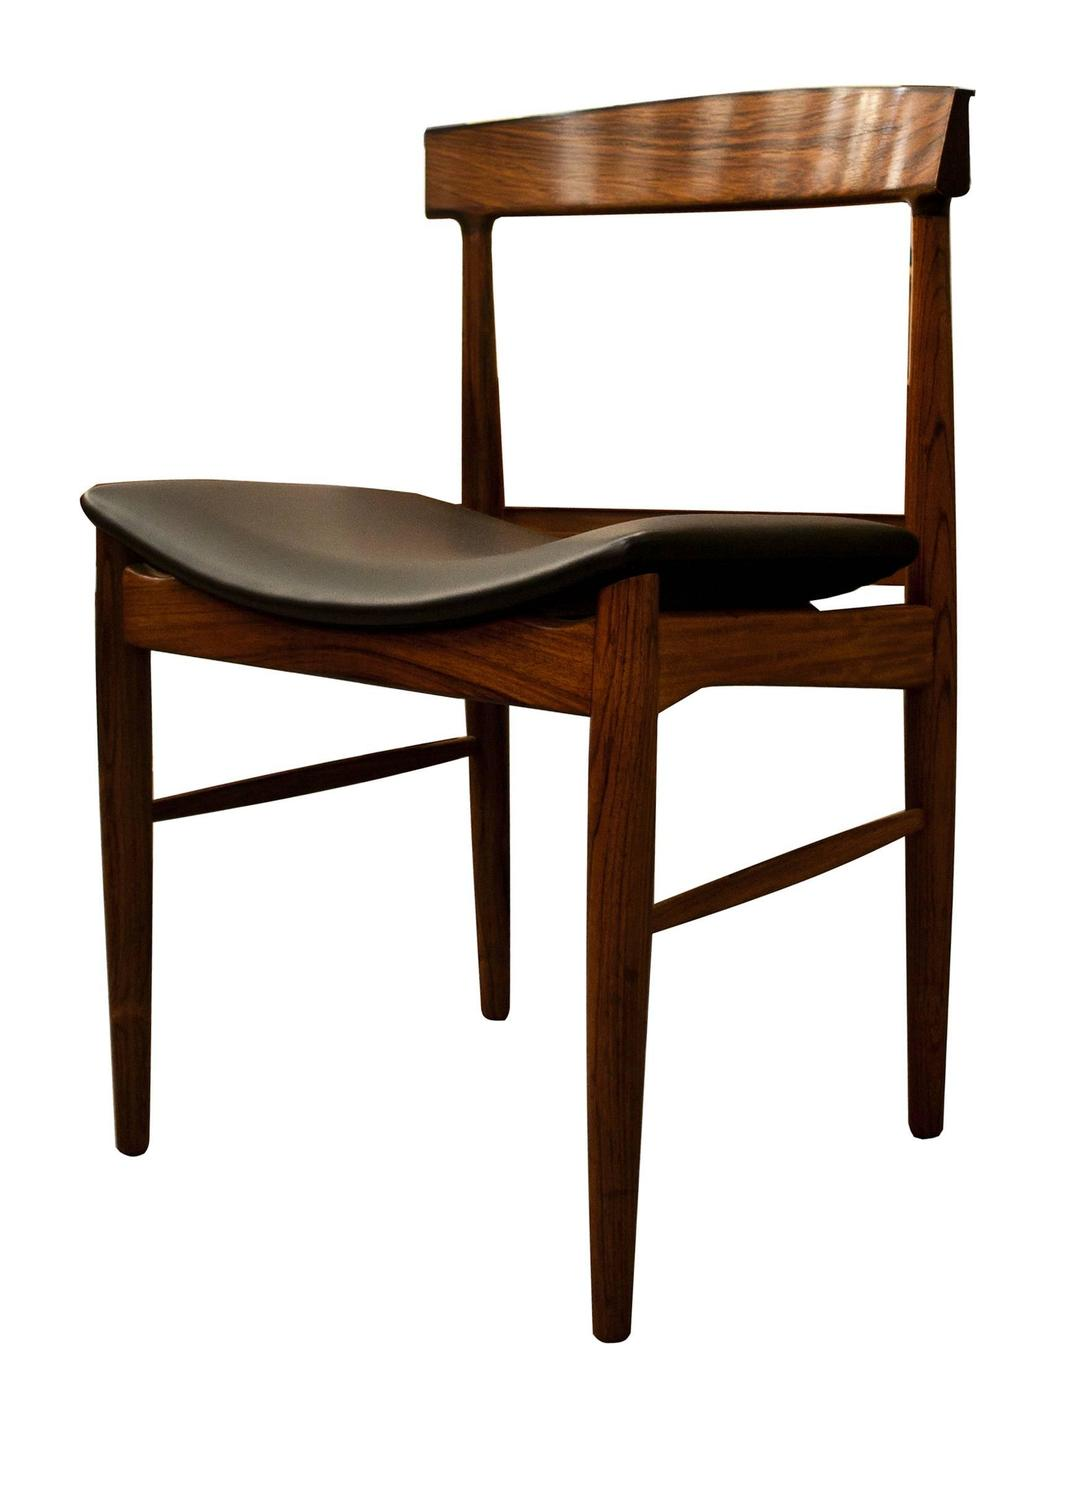 Mid Century Modern Design Rosewood Dining Table And Six Chairs Image 4